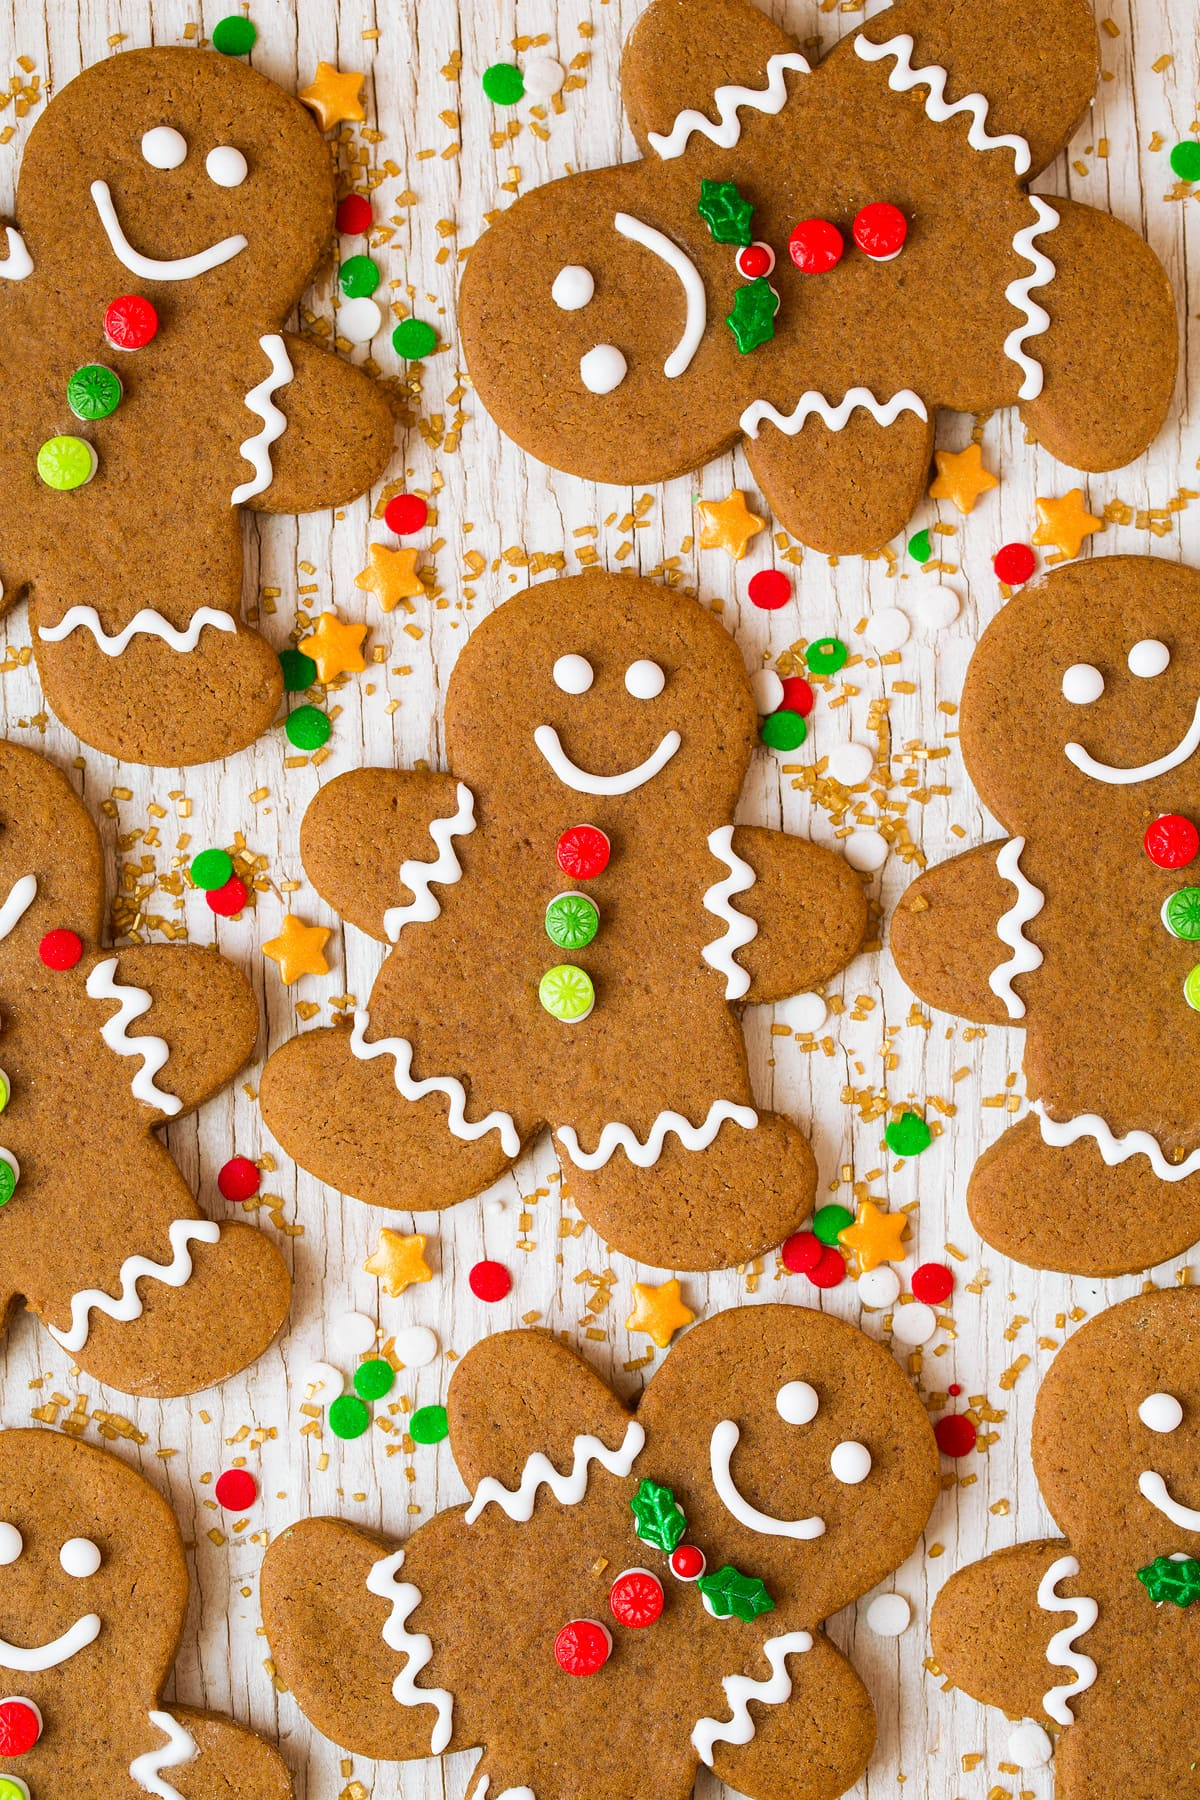 Decorated Gingerbread Cookies with icing and colorful candies.